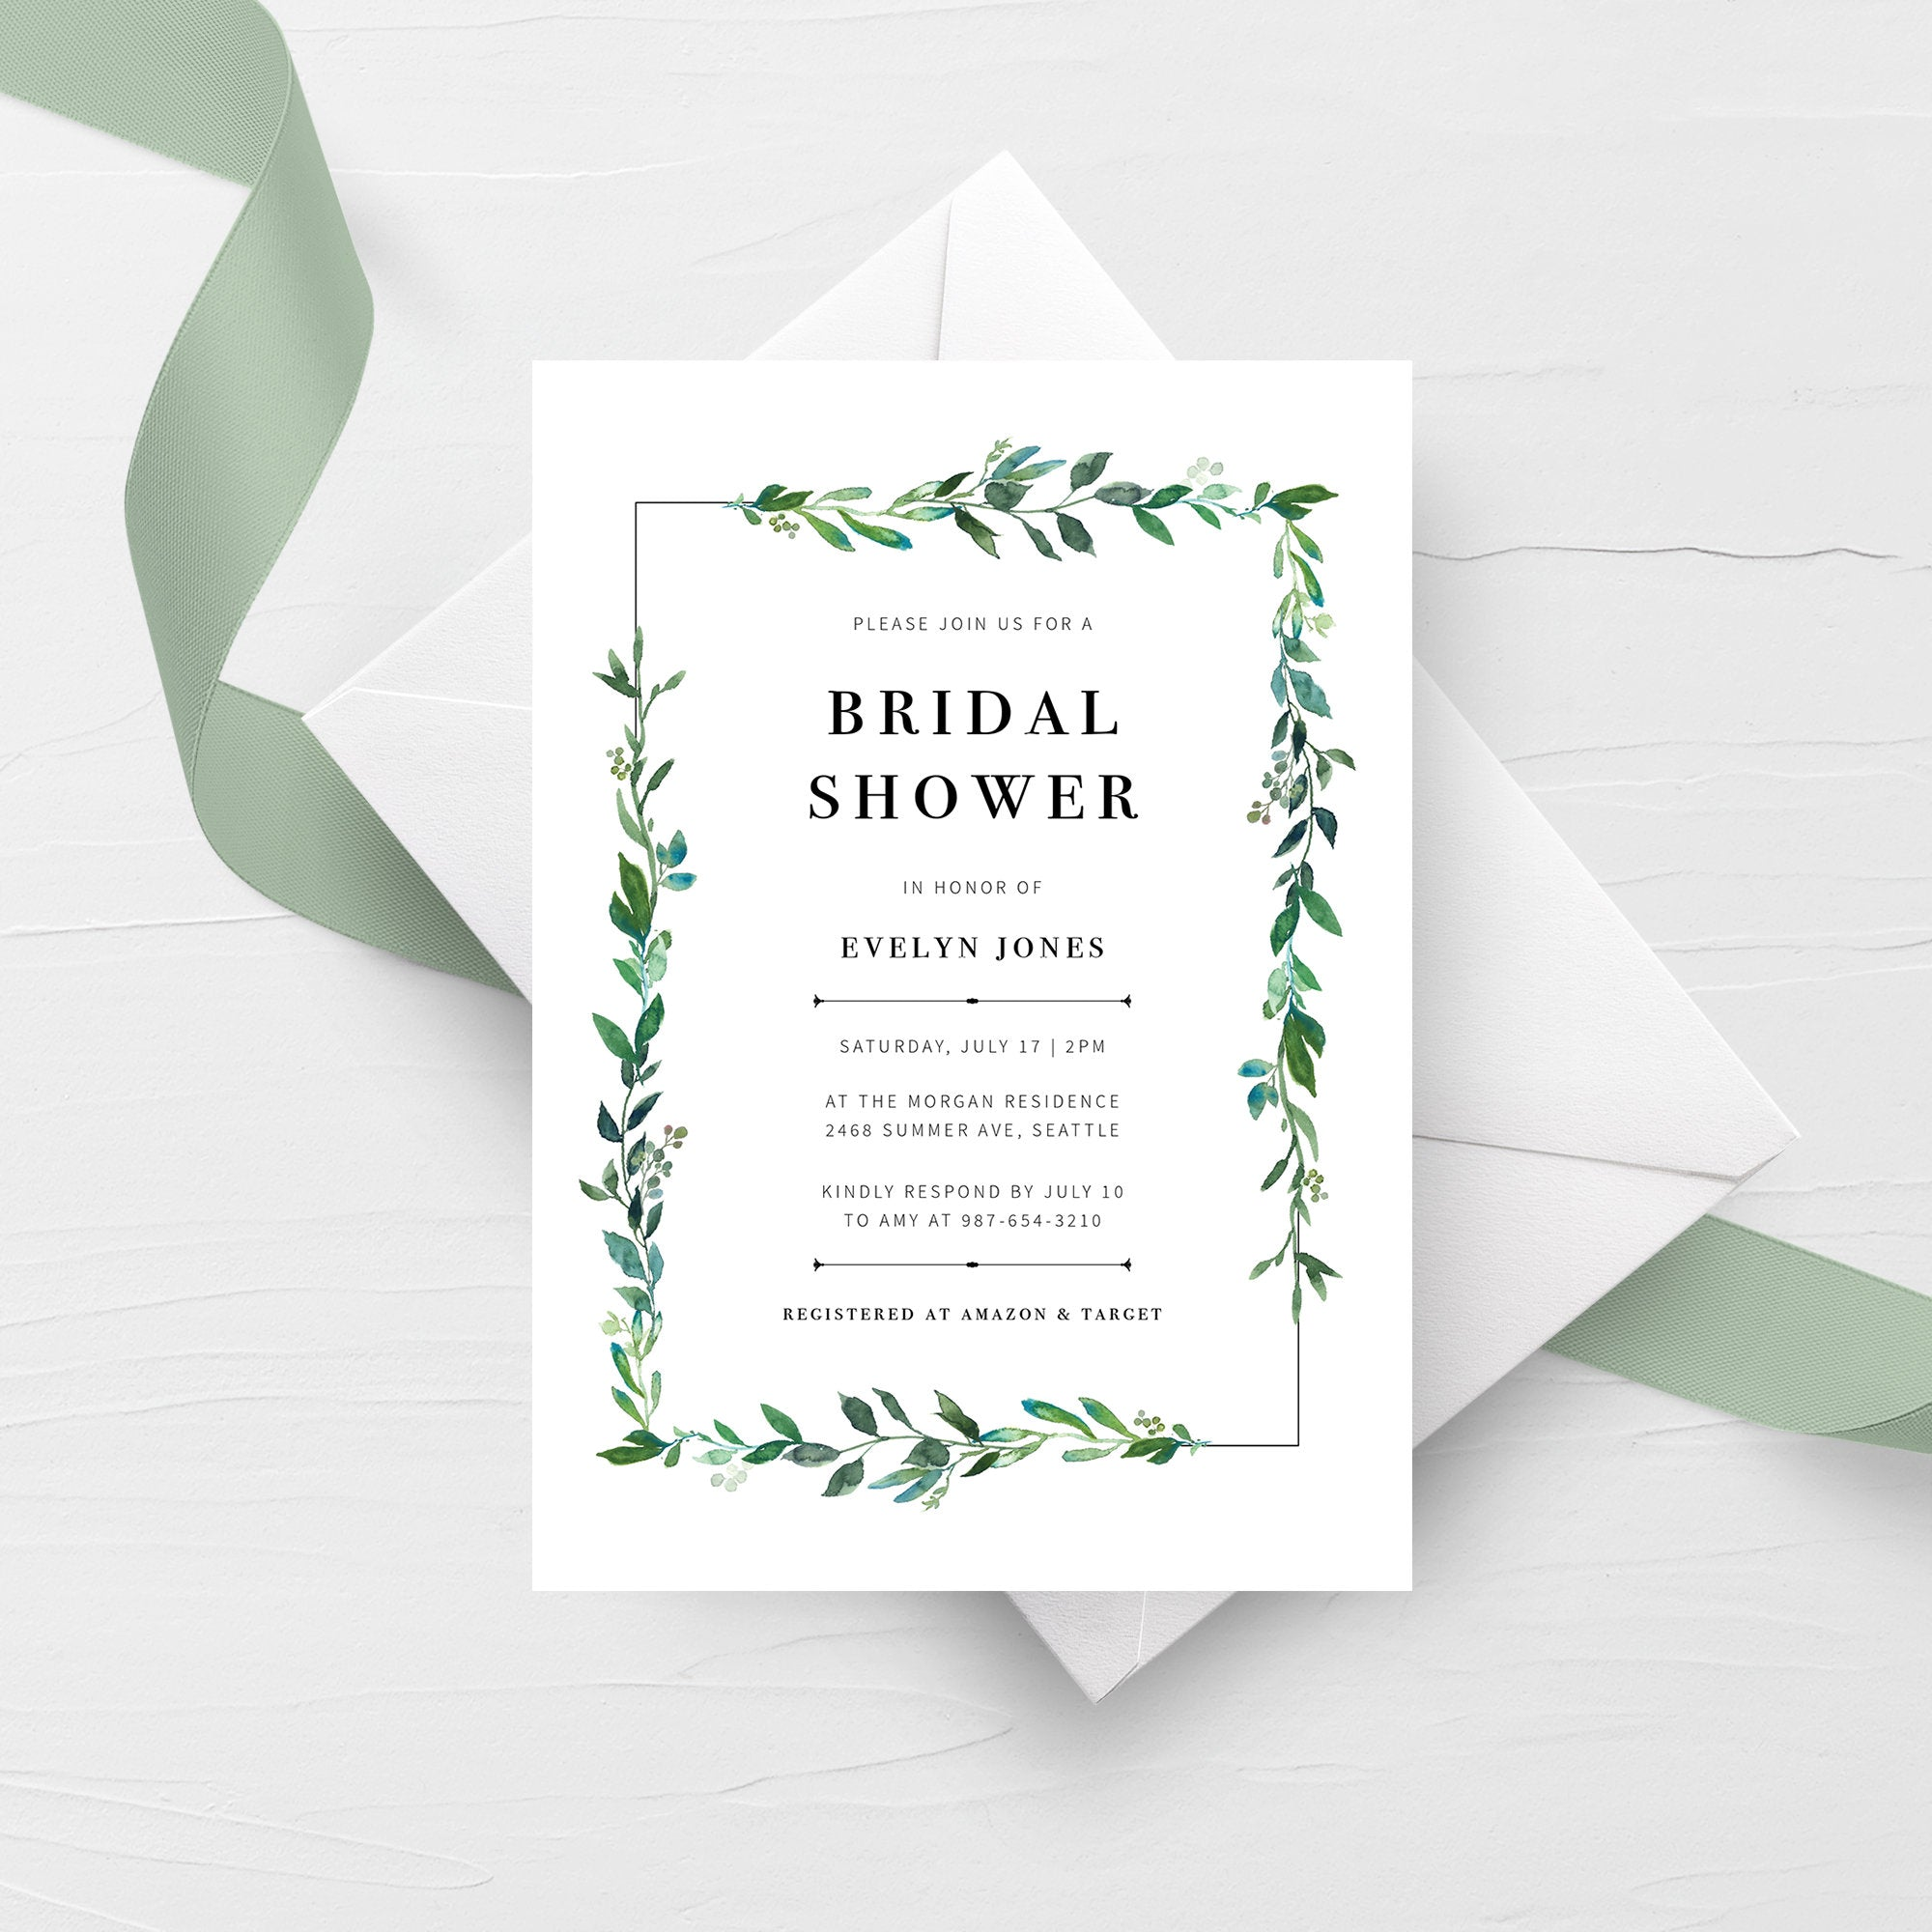 Greenery Bridal Shower Invitation Template, Printable Bridal Shower Invite Greenery, Bridal Shower Invitation Greenery, 5x7 G100